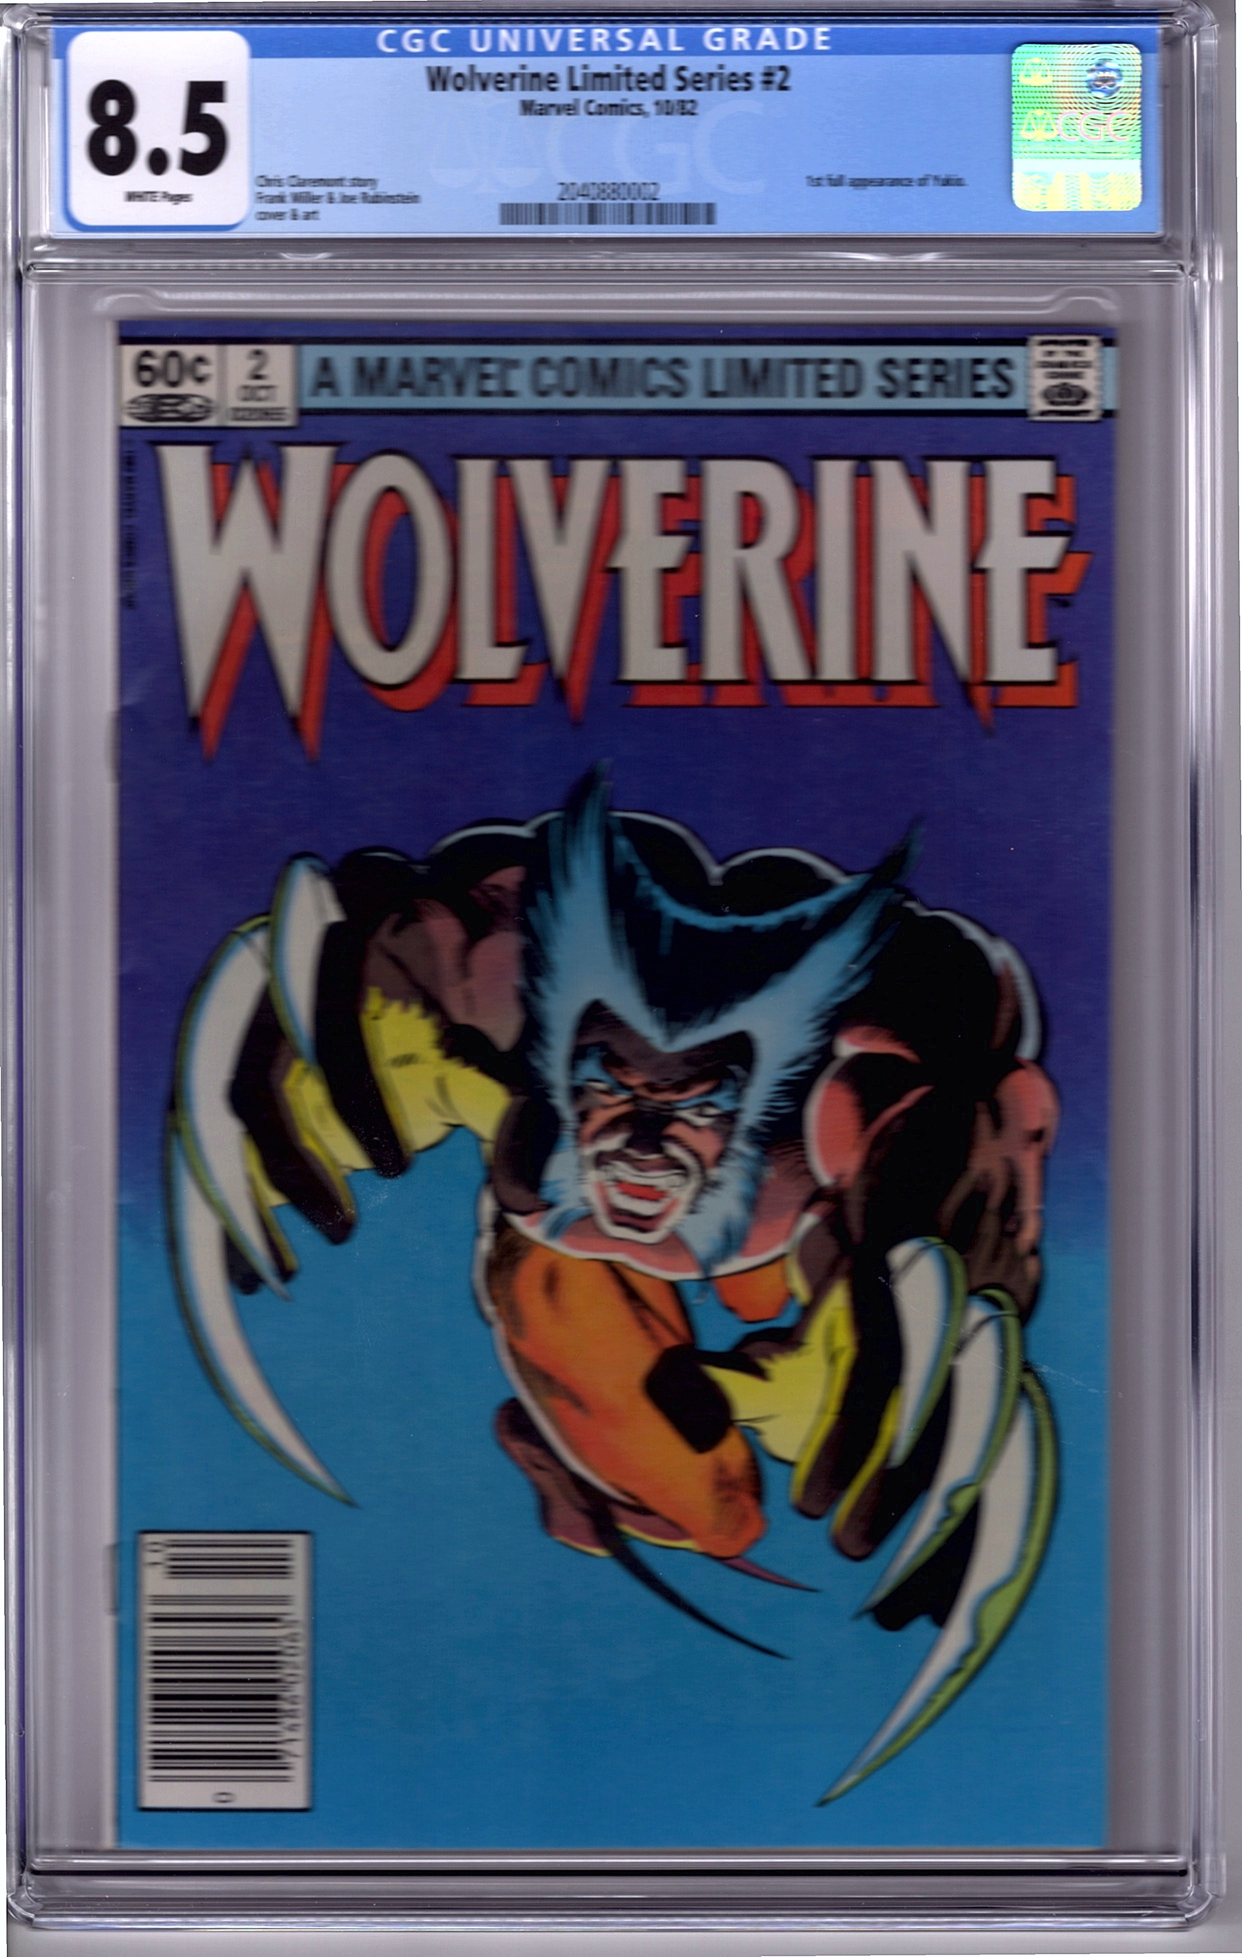 Wolverine Limited V1#2 CGC 8.5